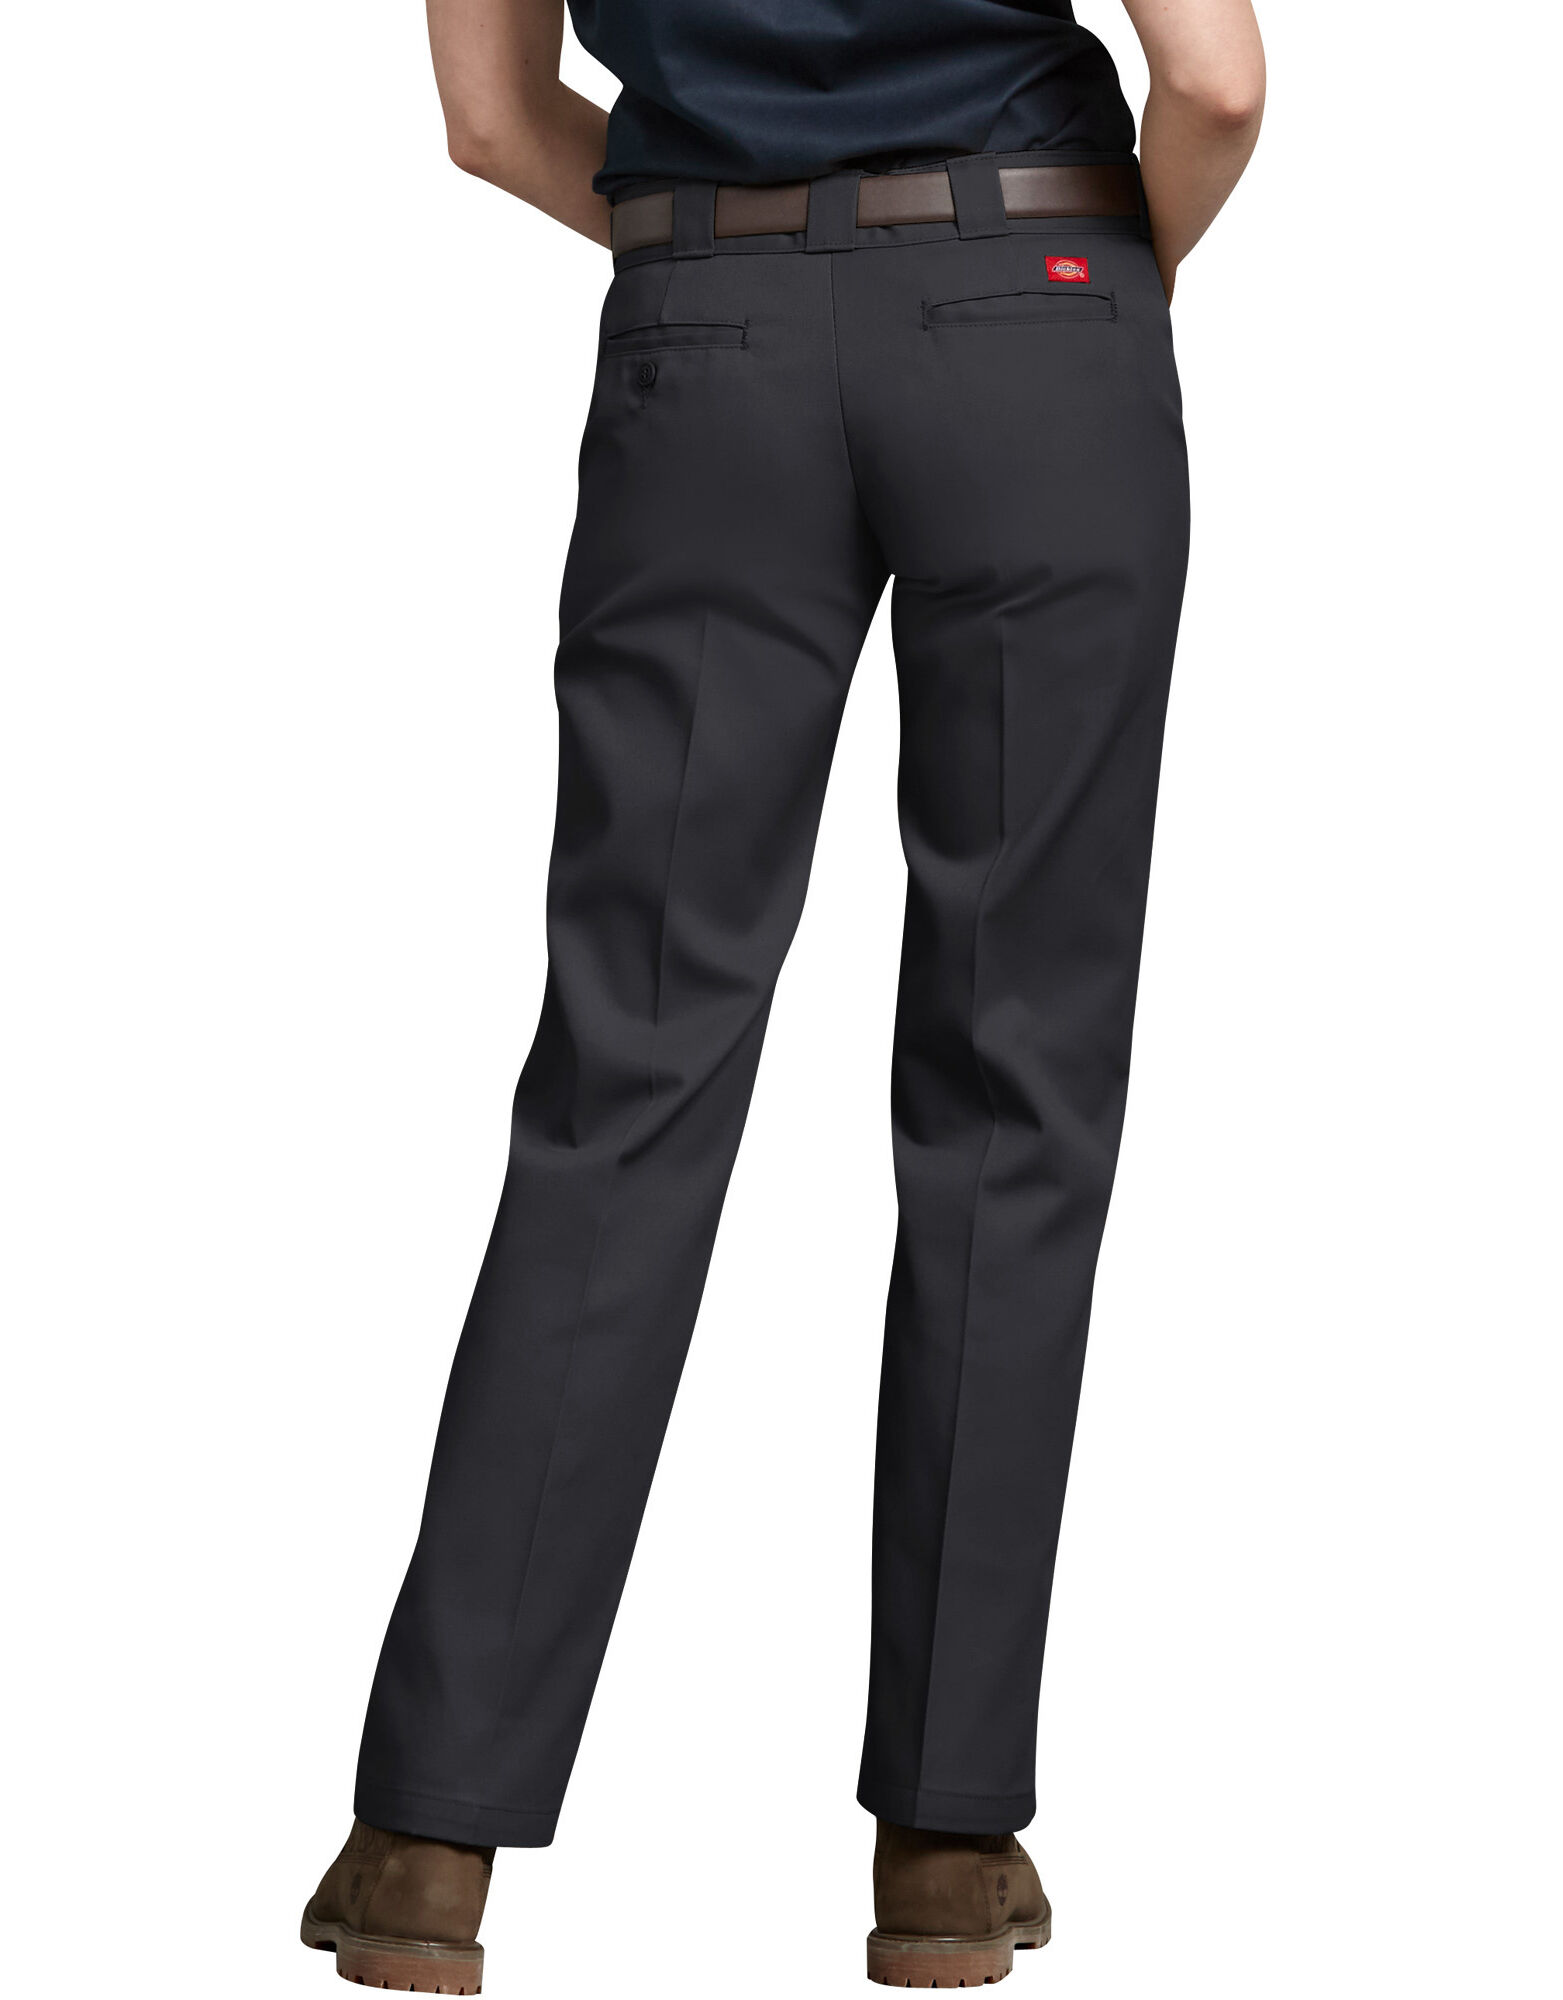 Perfect Black Work Pants For Women Work Pants